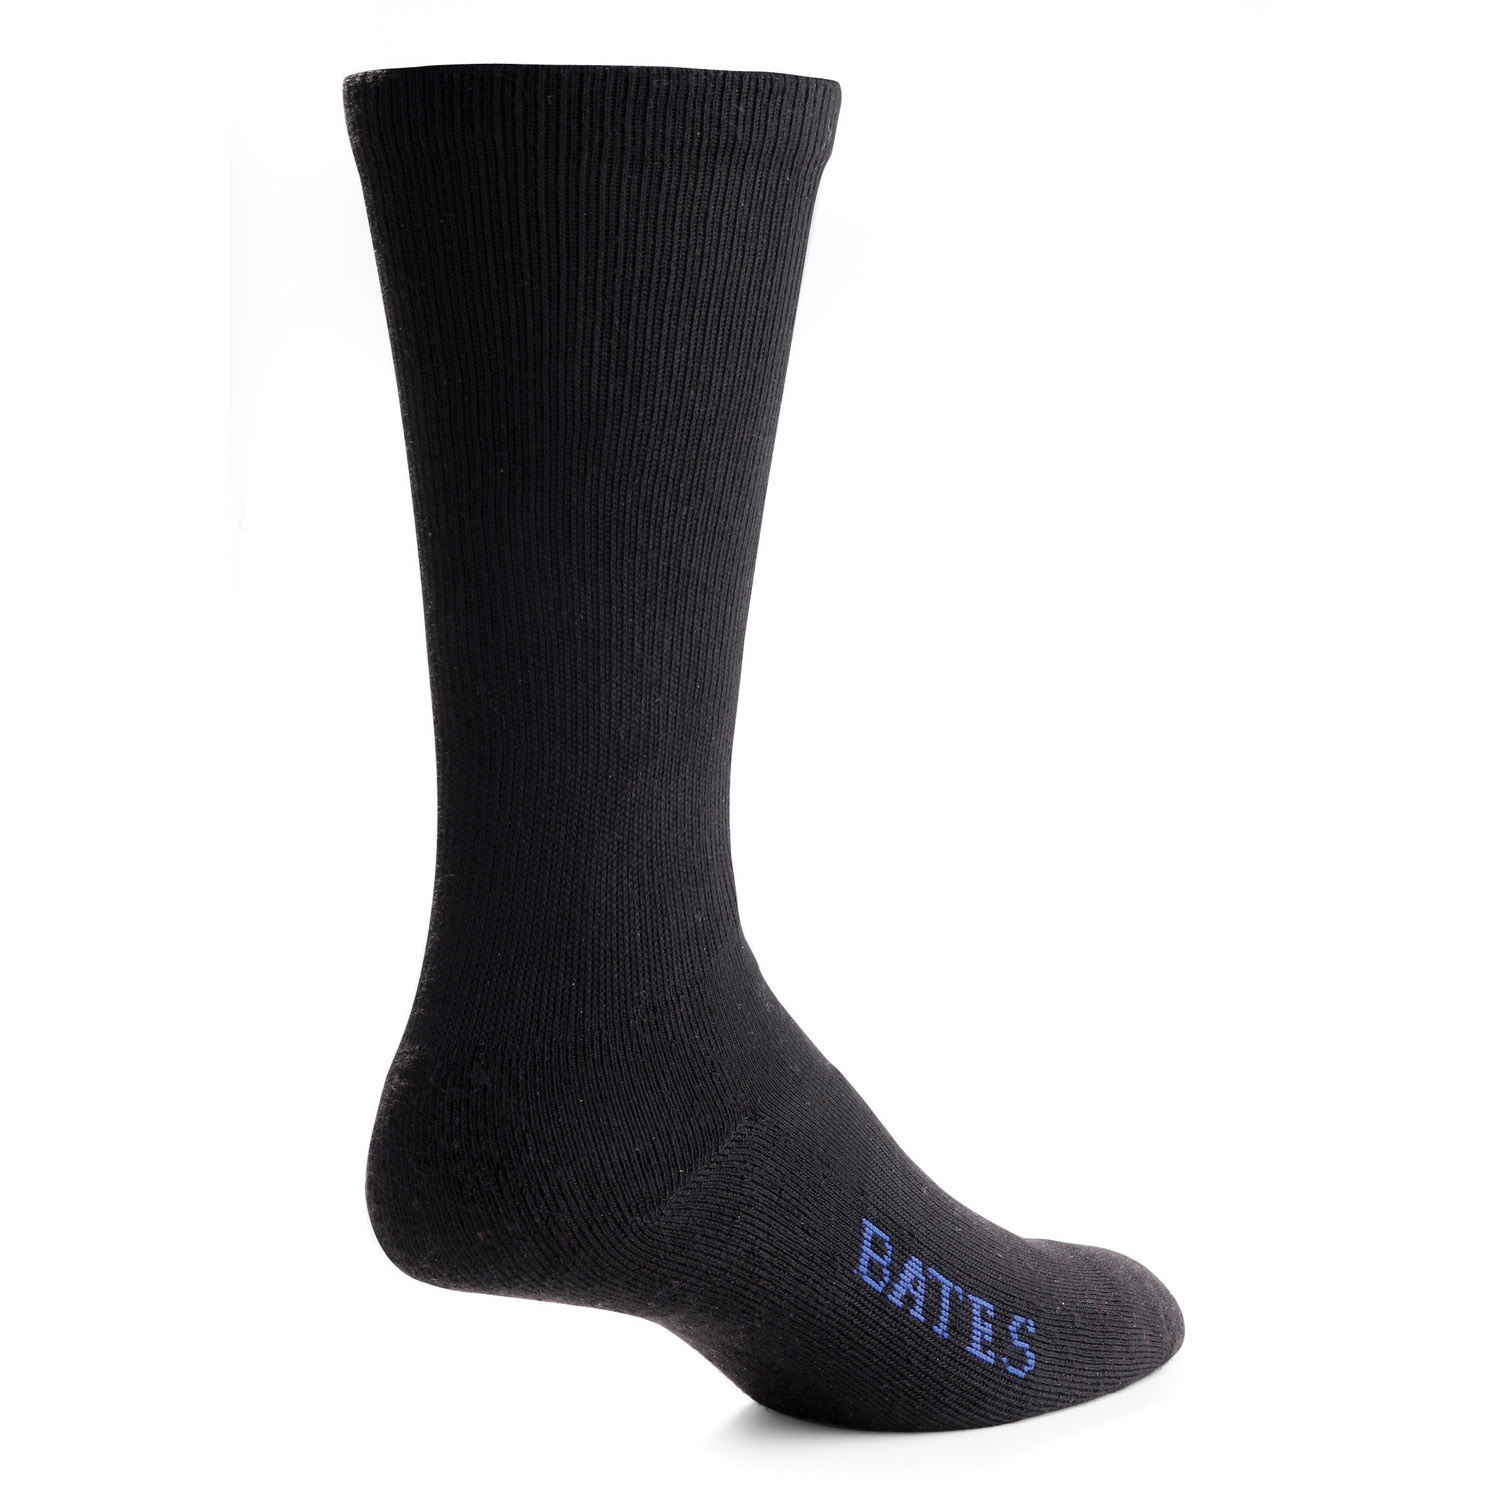 Bates Uniform Dress Socks